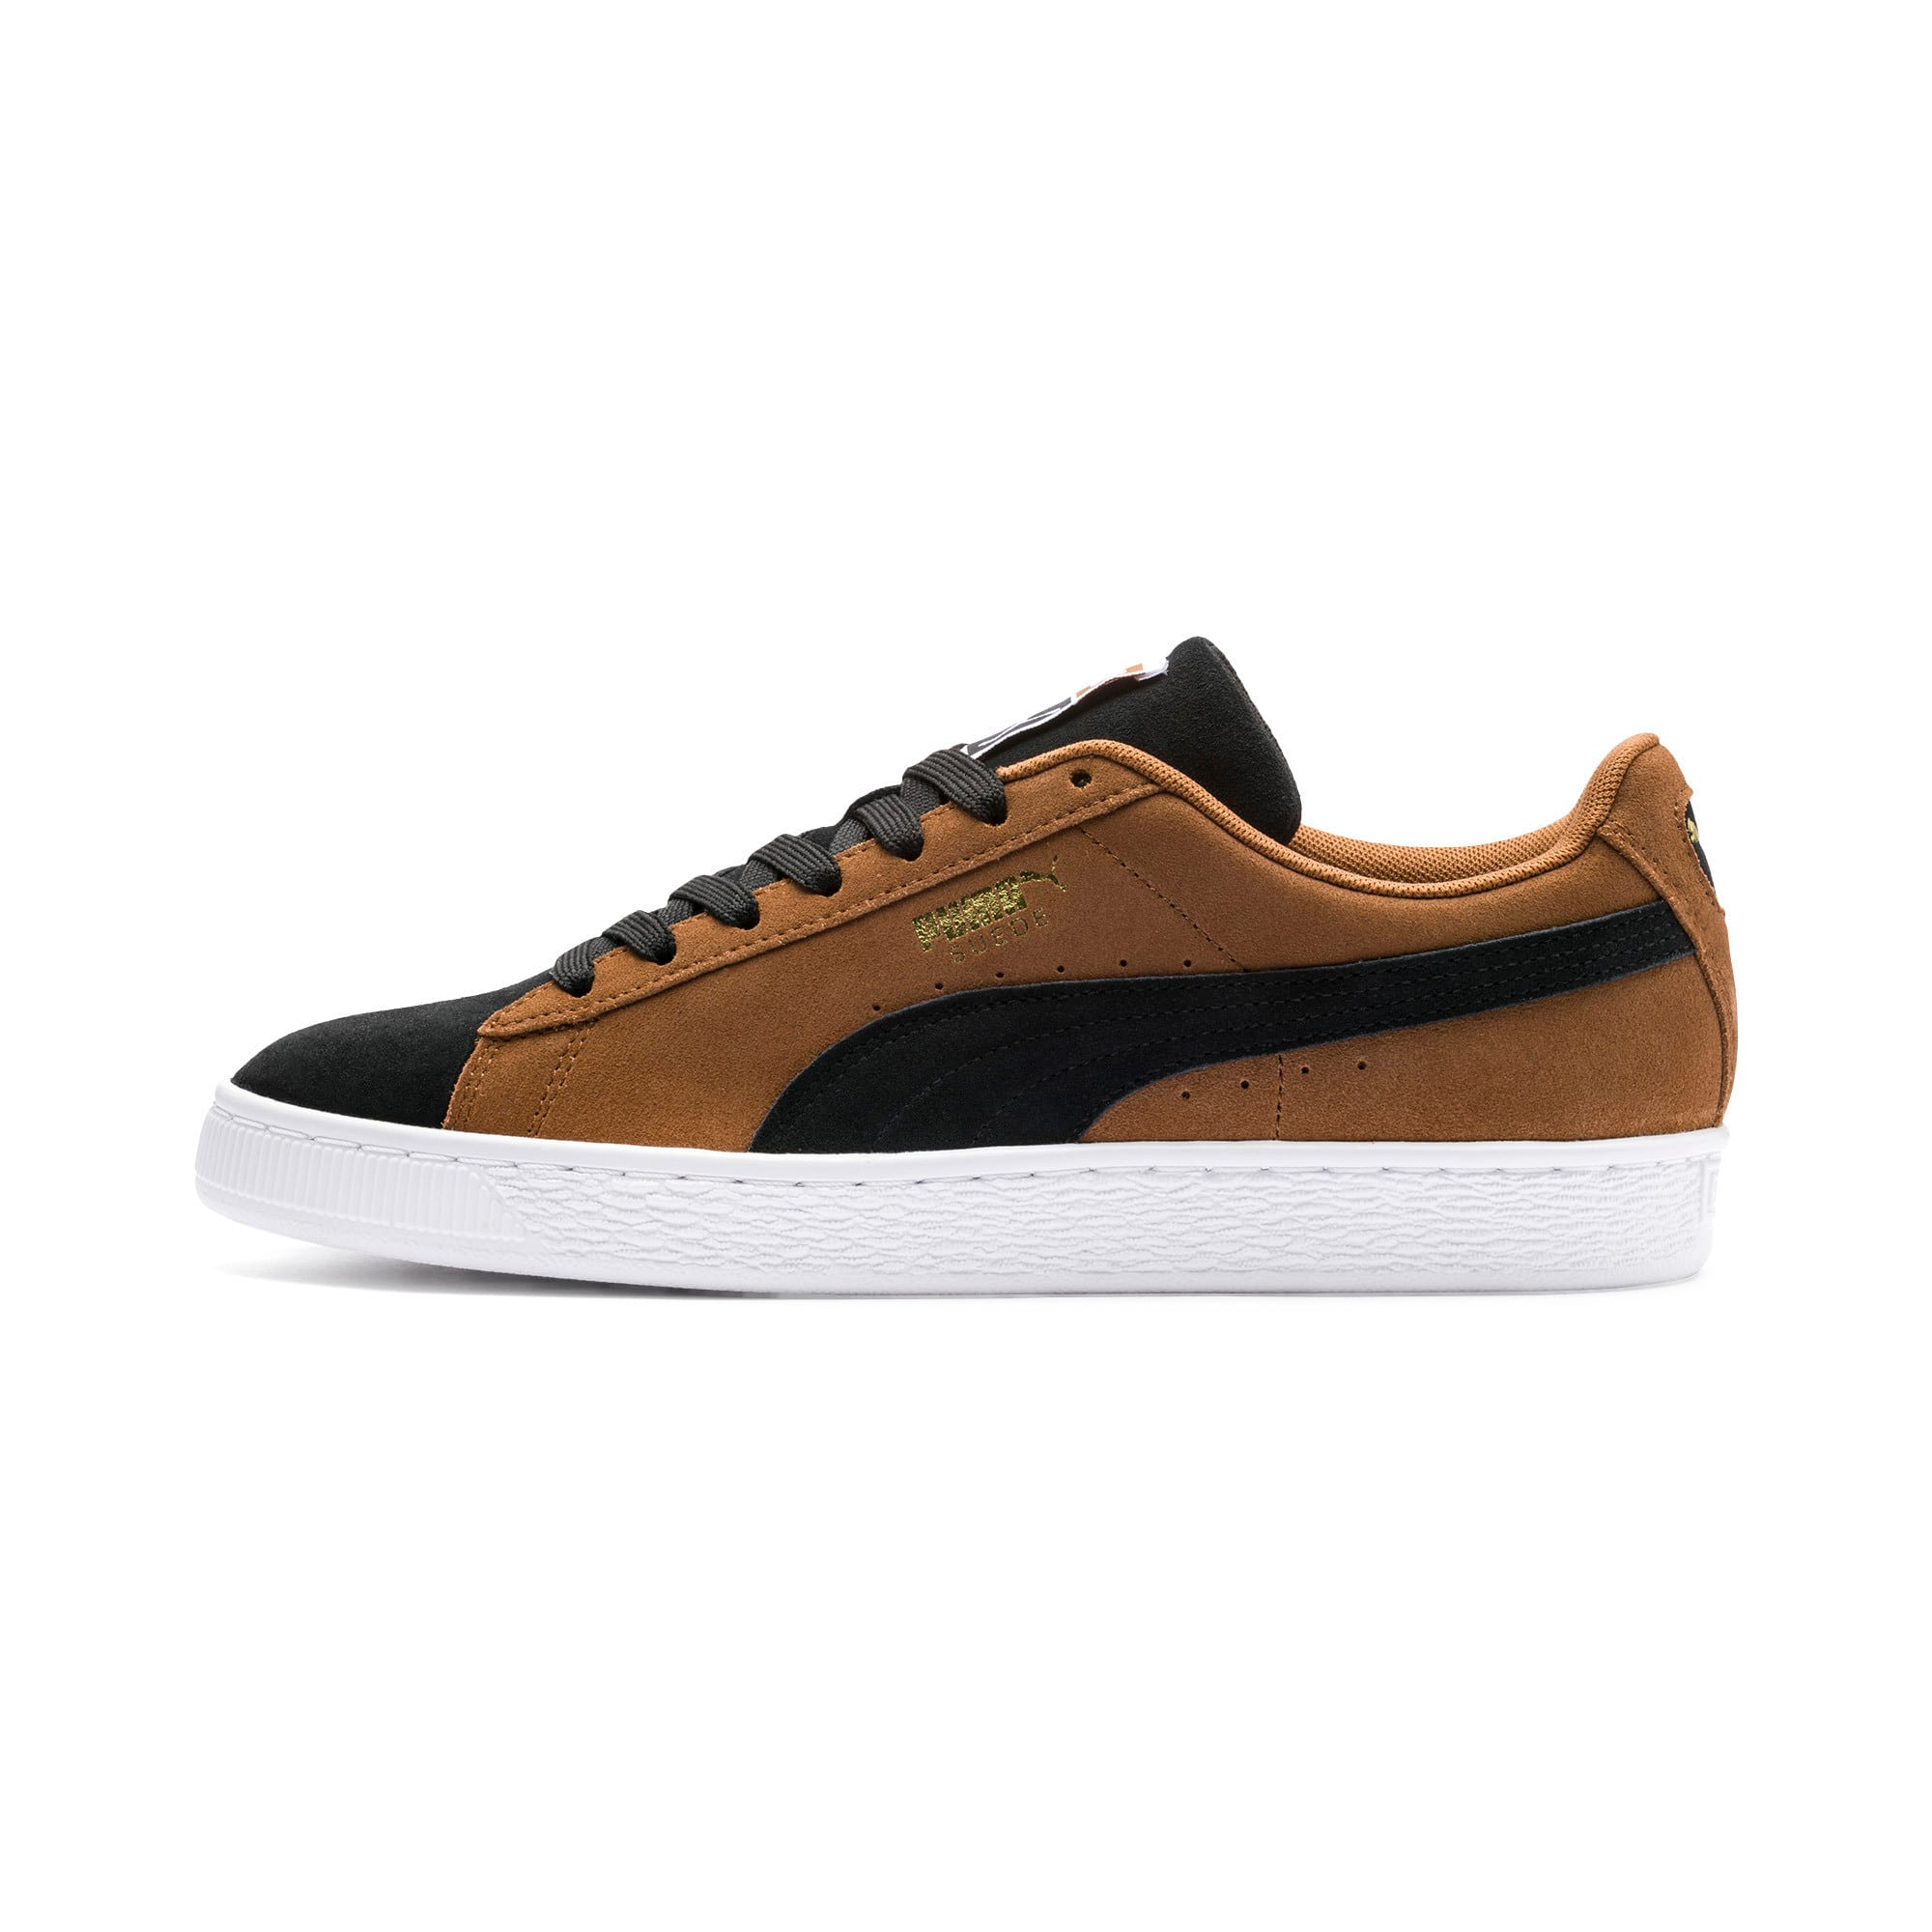 Thumbnail 1 of Suede Classic Sneakers, Dachsund-Puma Black-P Wht, medium